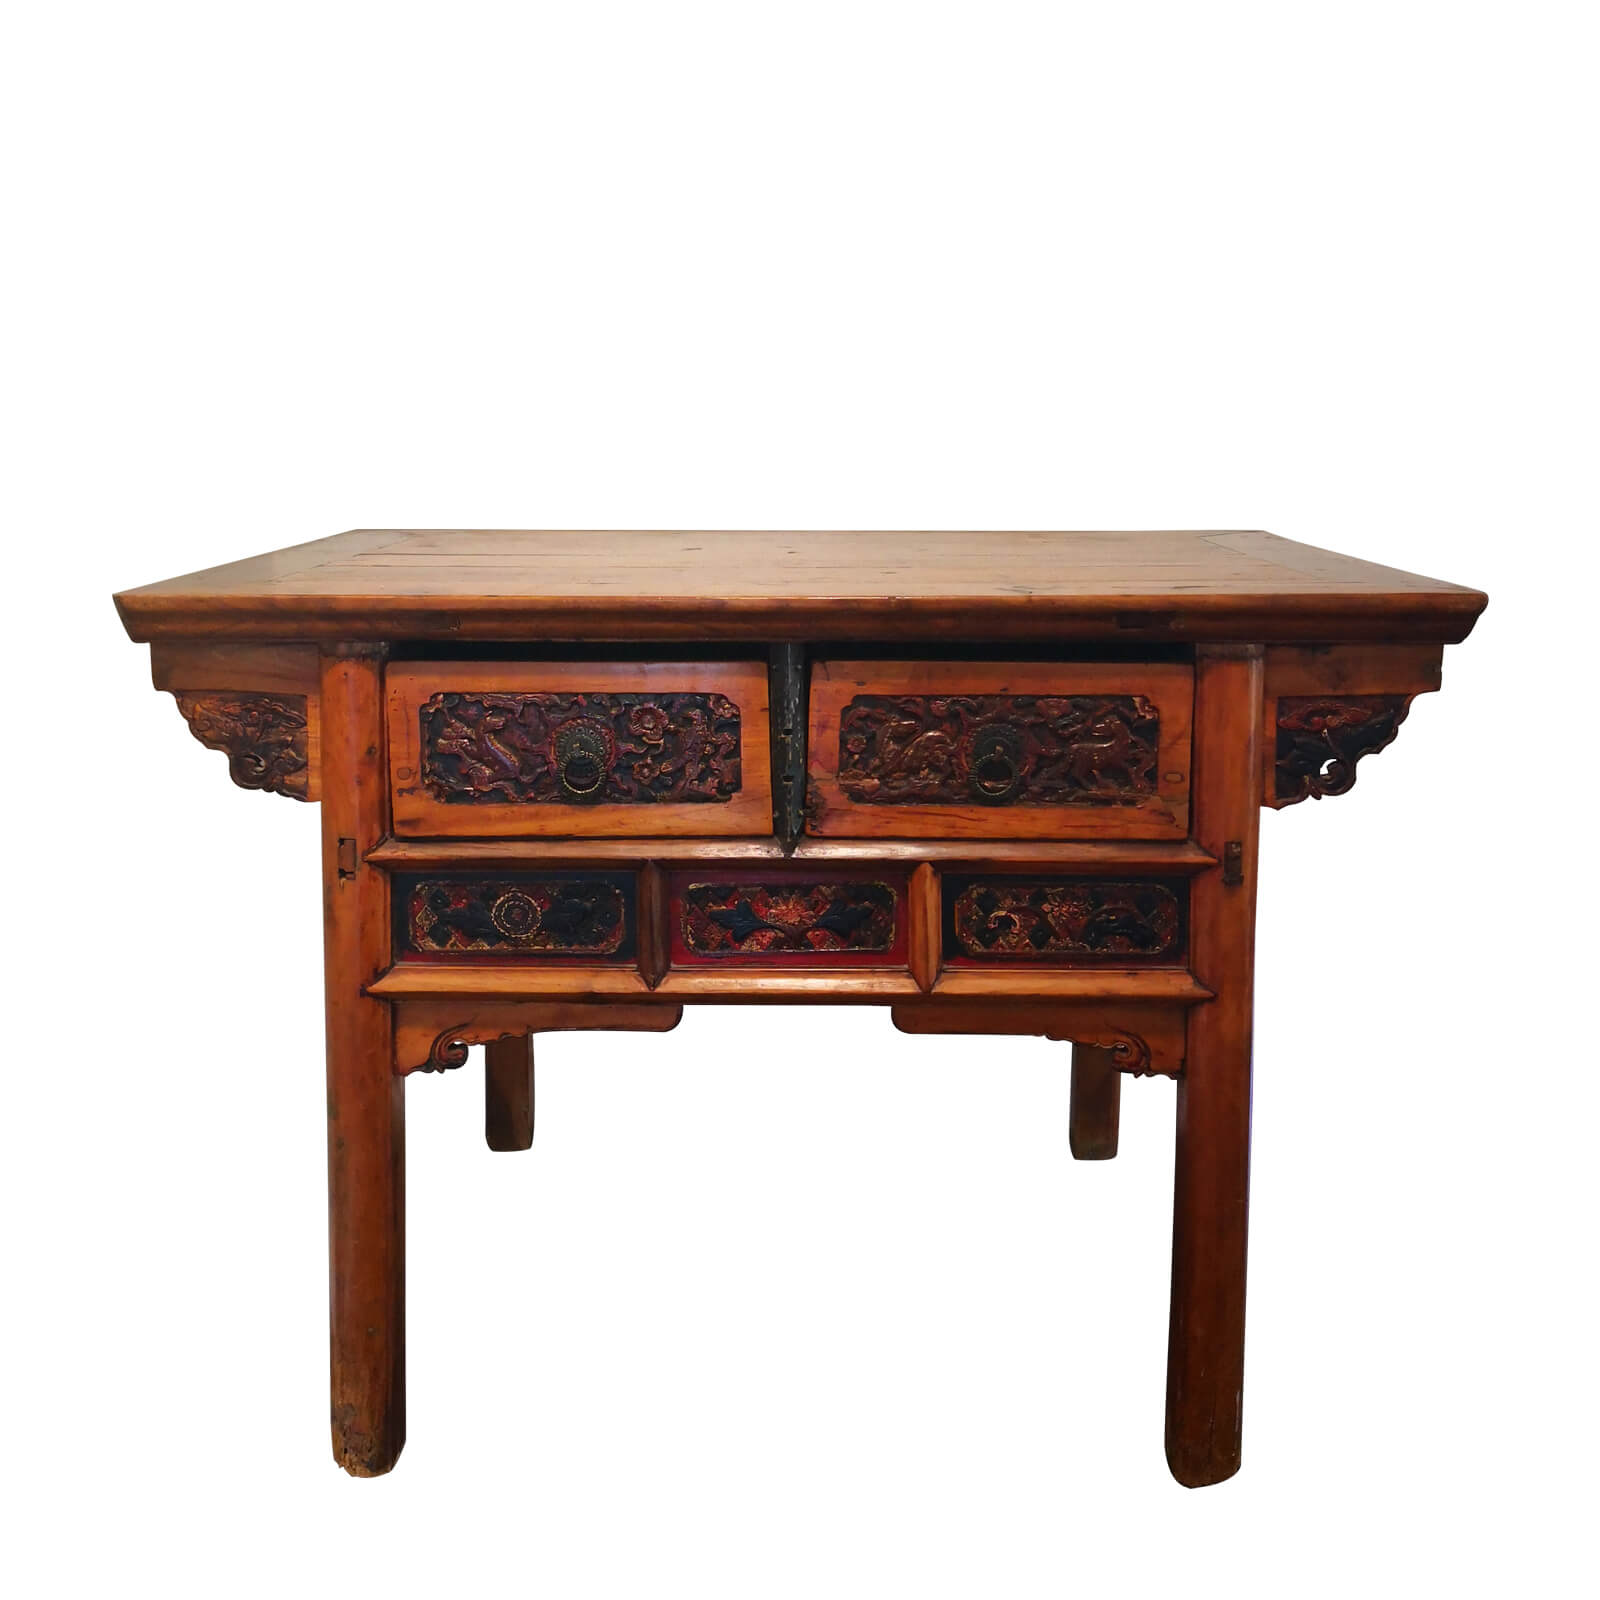 Two Design Lovers Asian console table